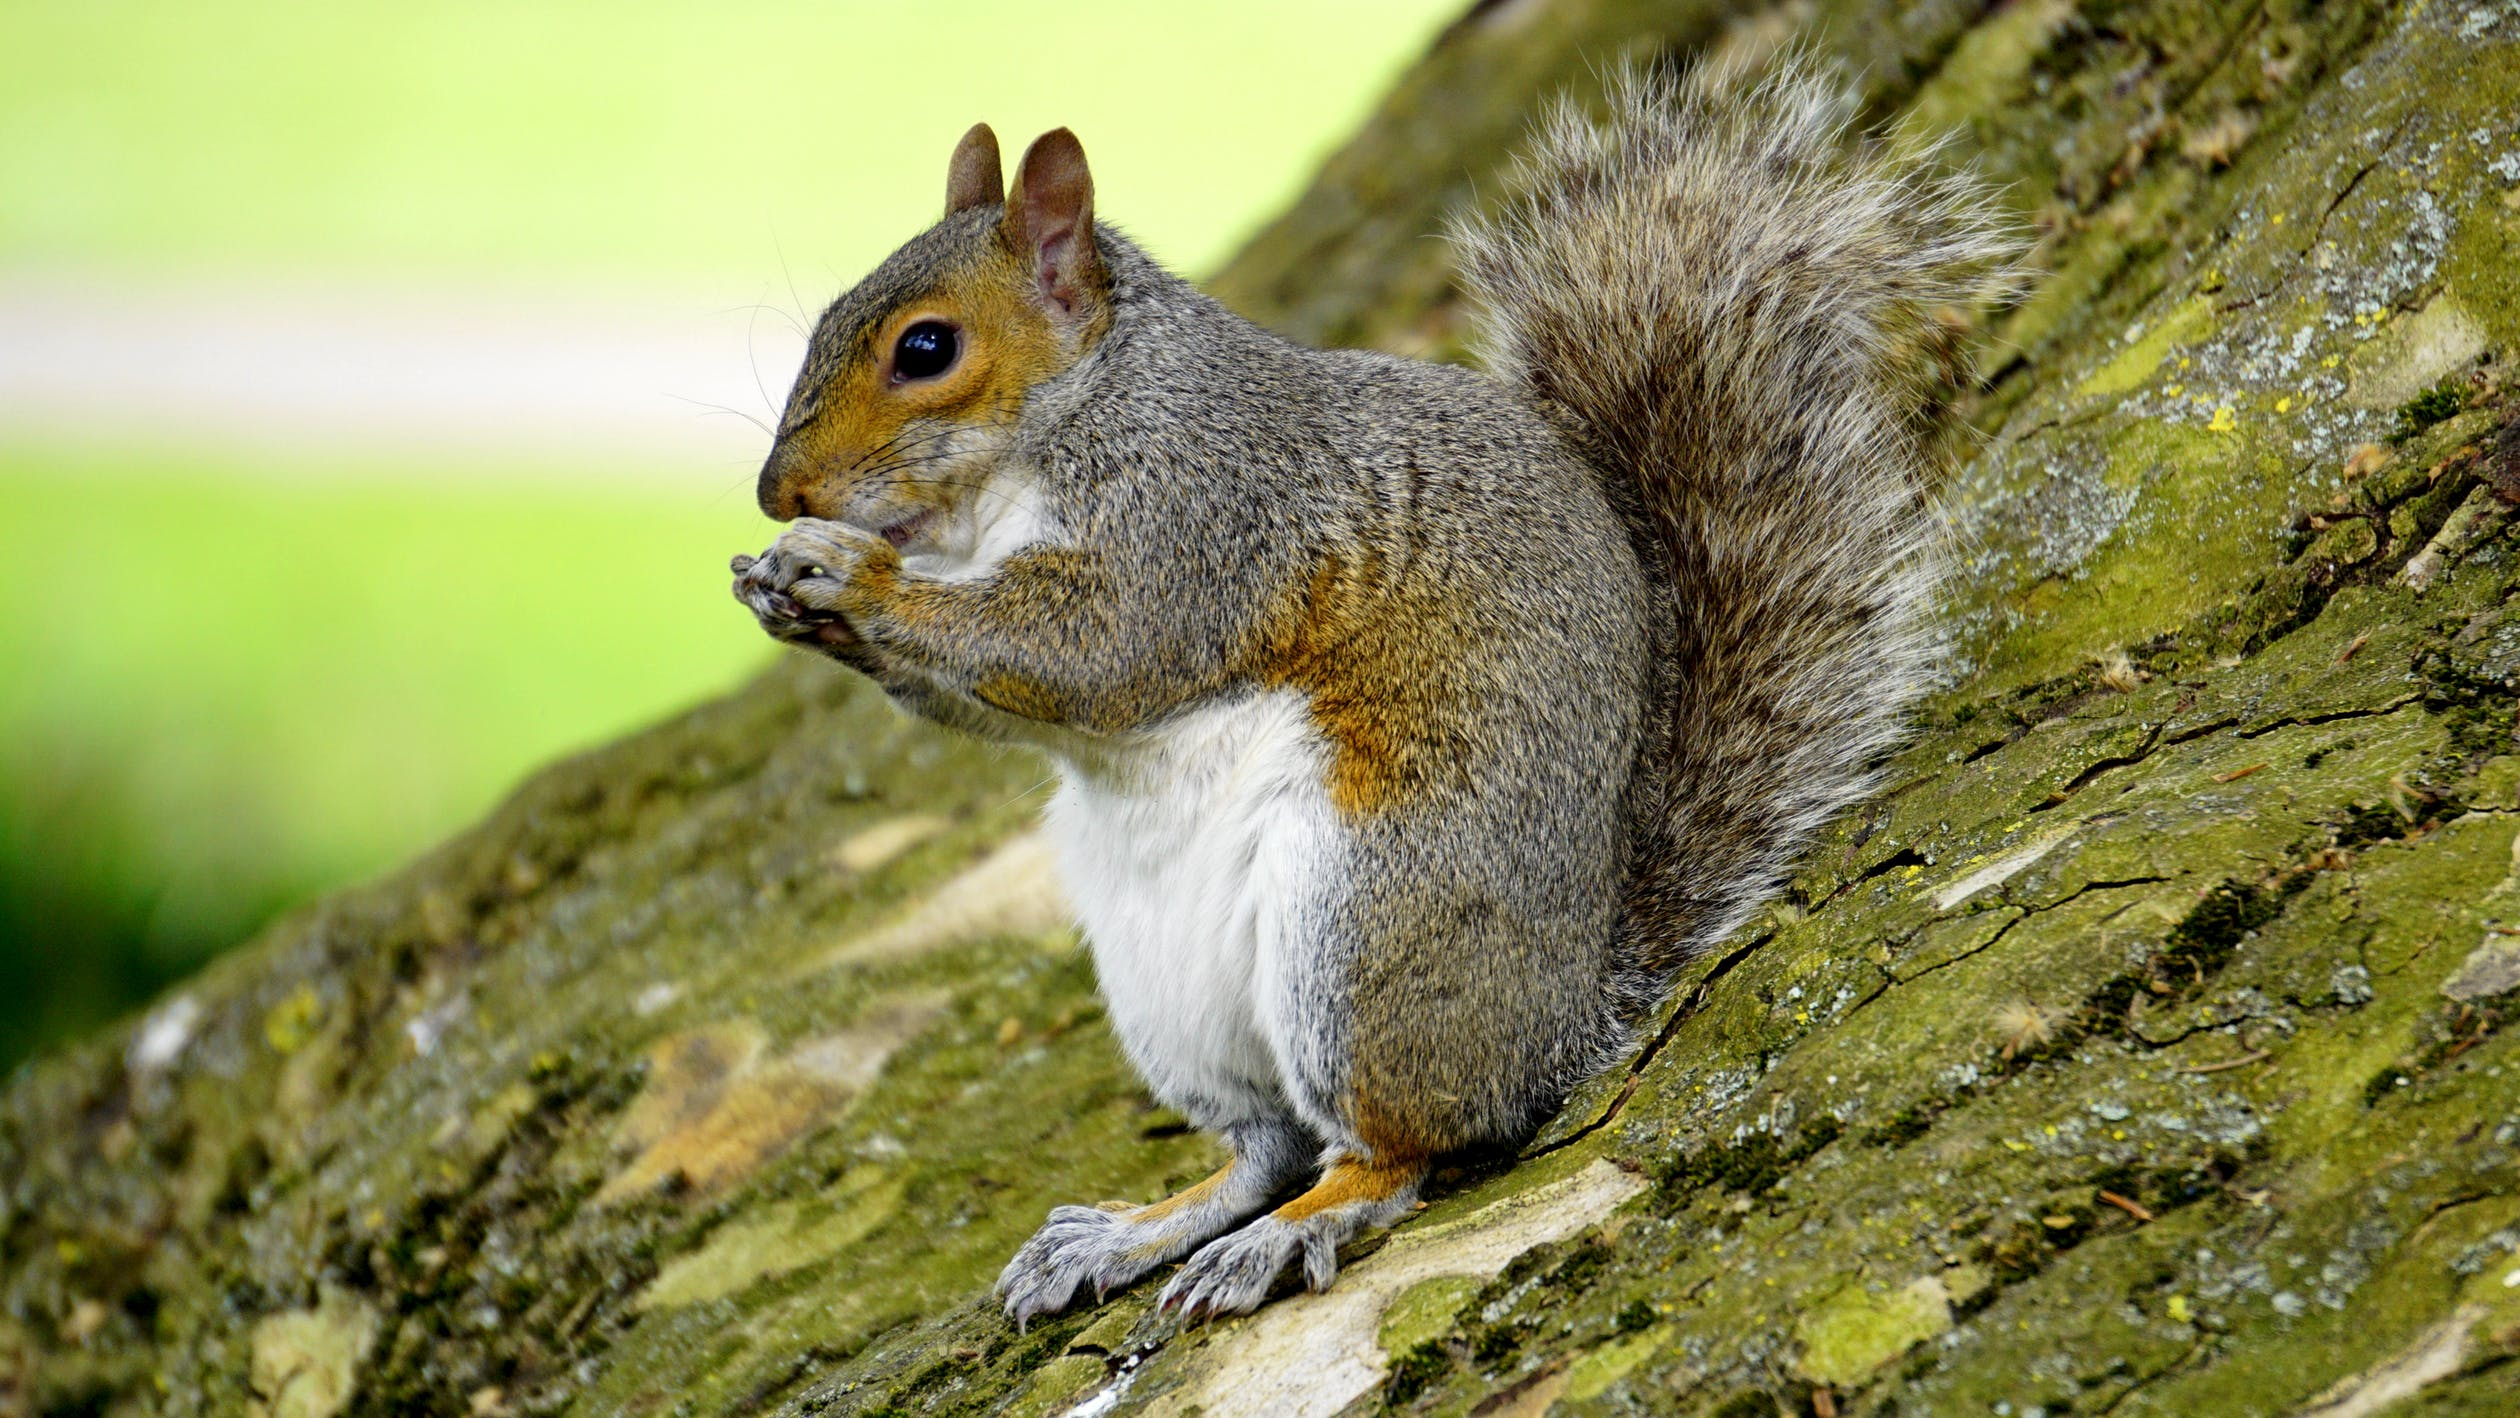 Squirrel control and wildlife management in Denver